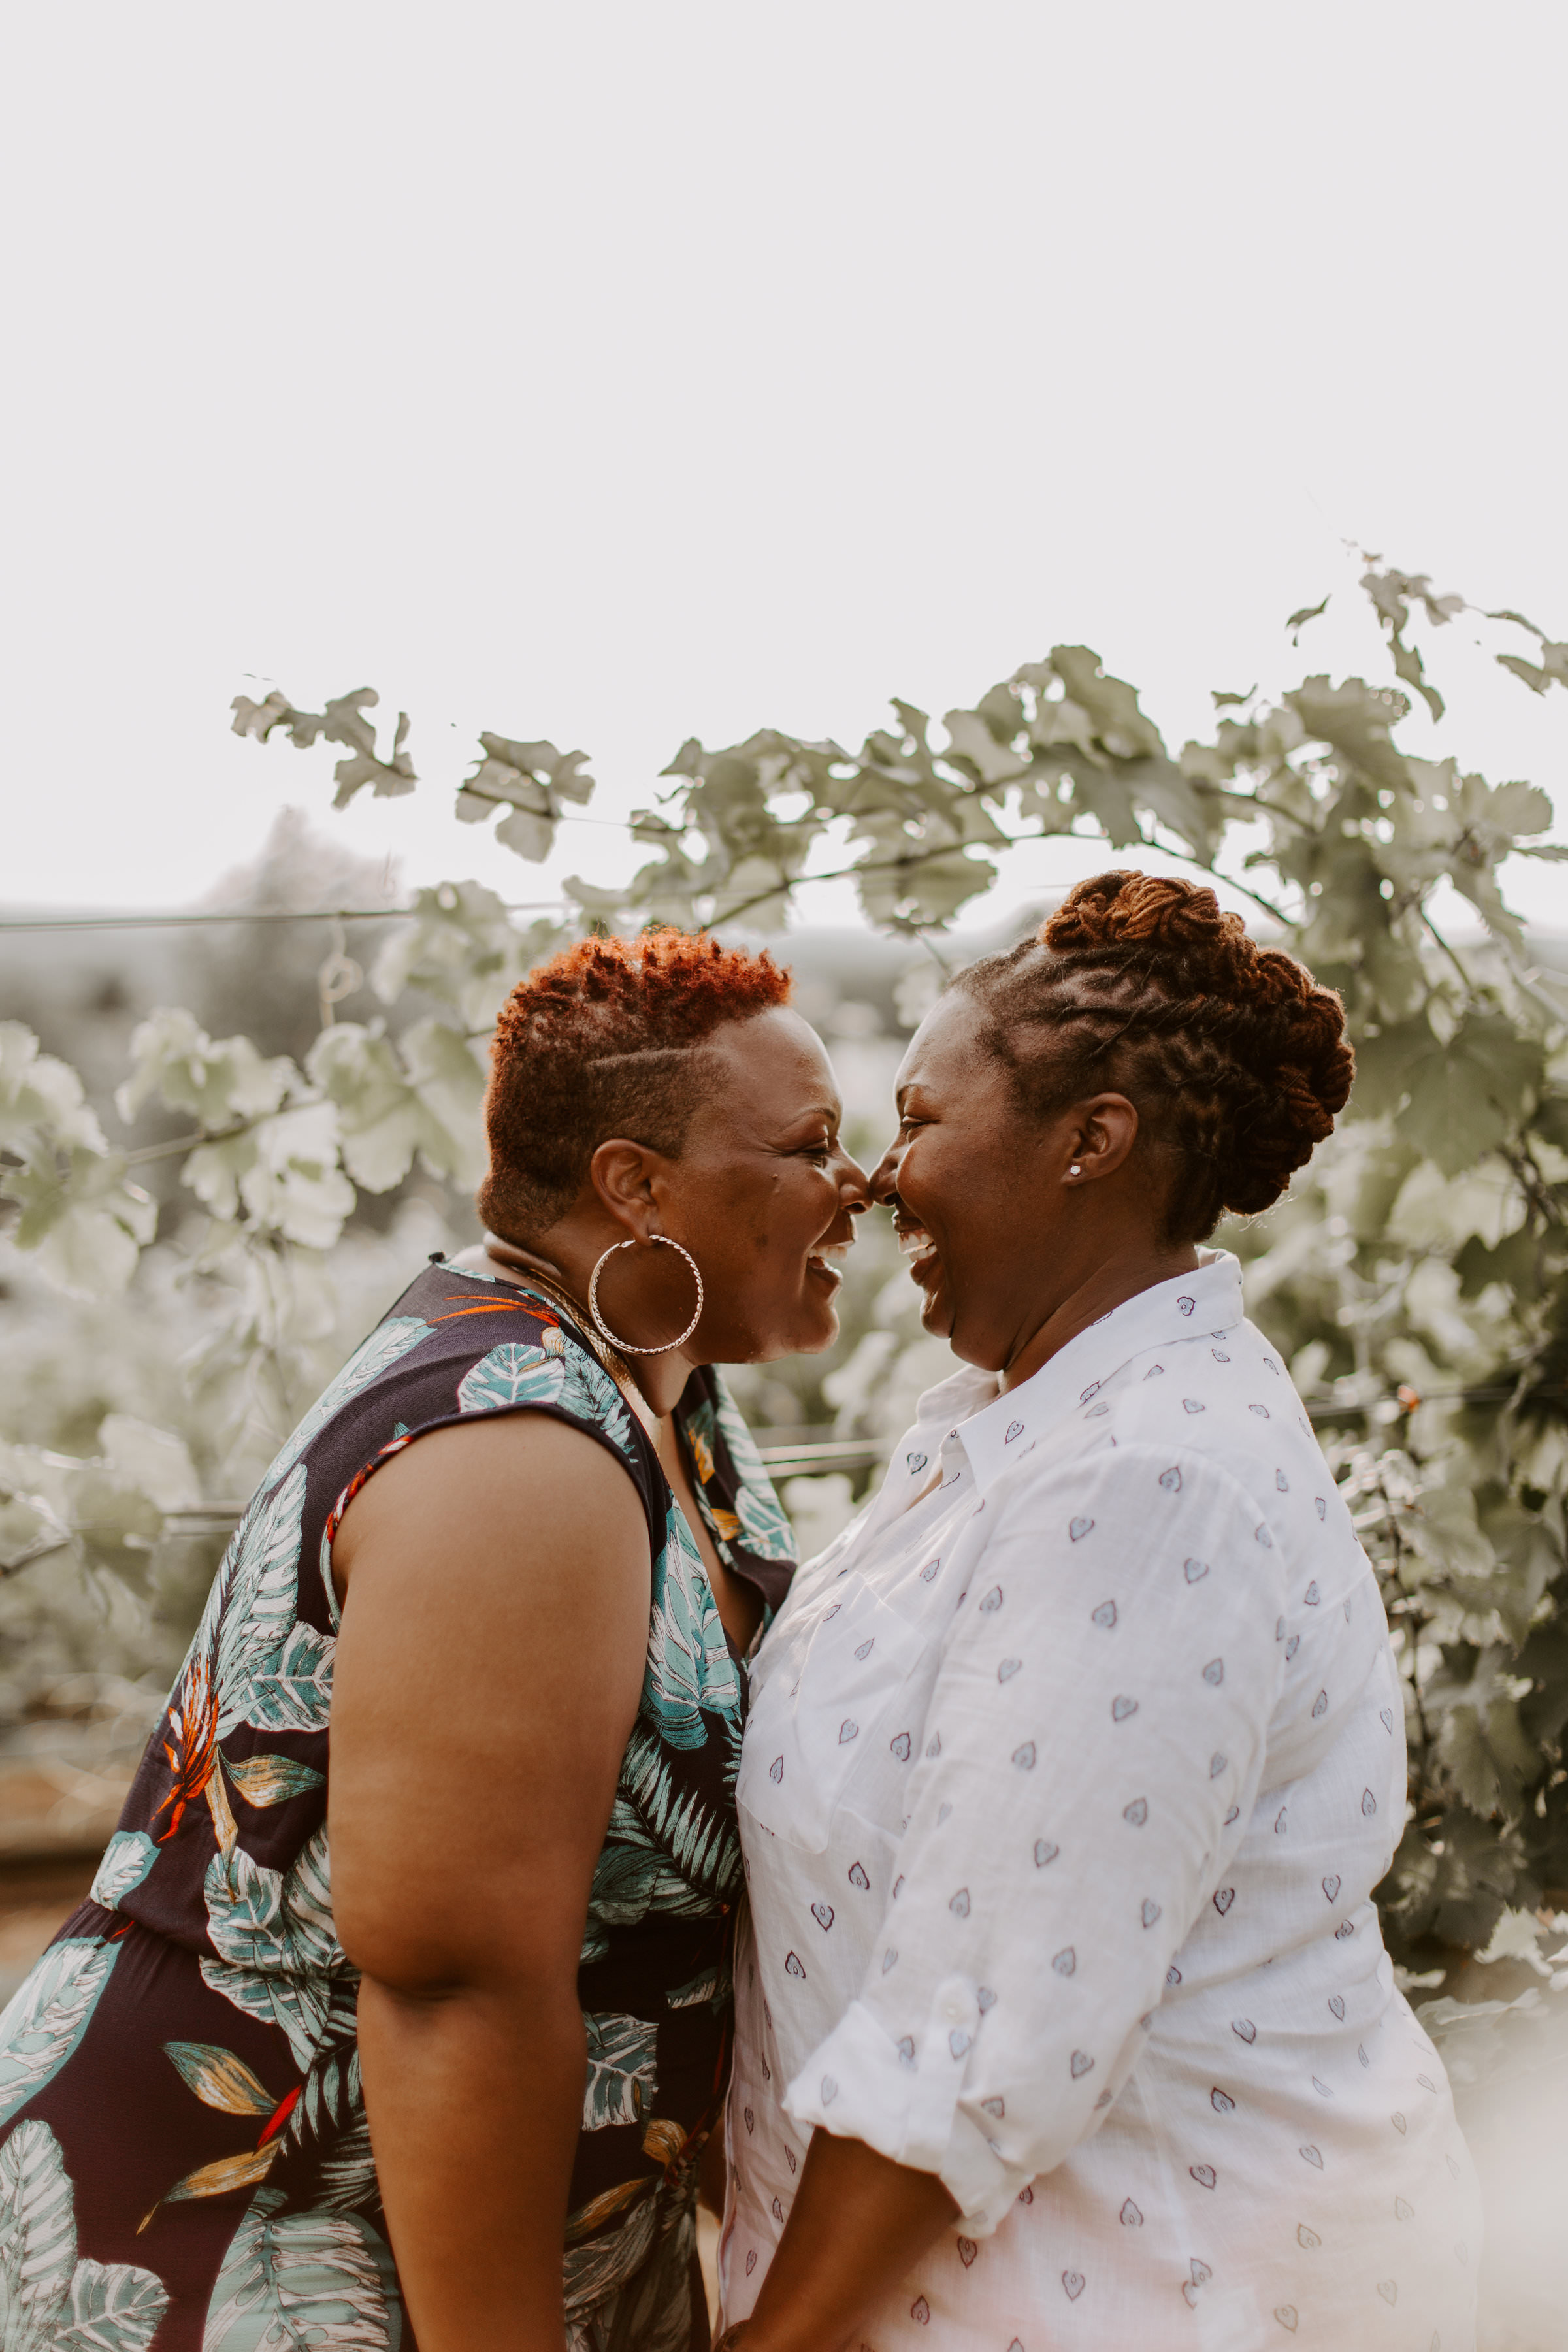 Beautiful golden hour session at Arrington Vineyards featuring LGBTQ+ couple